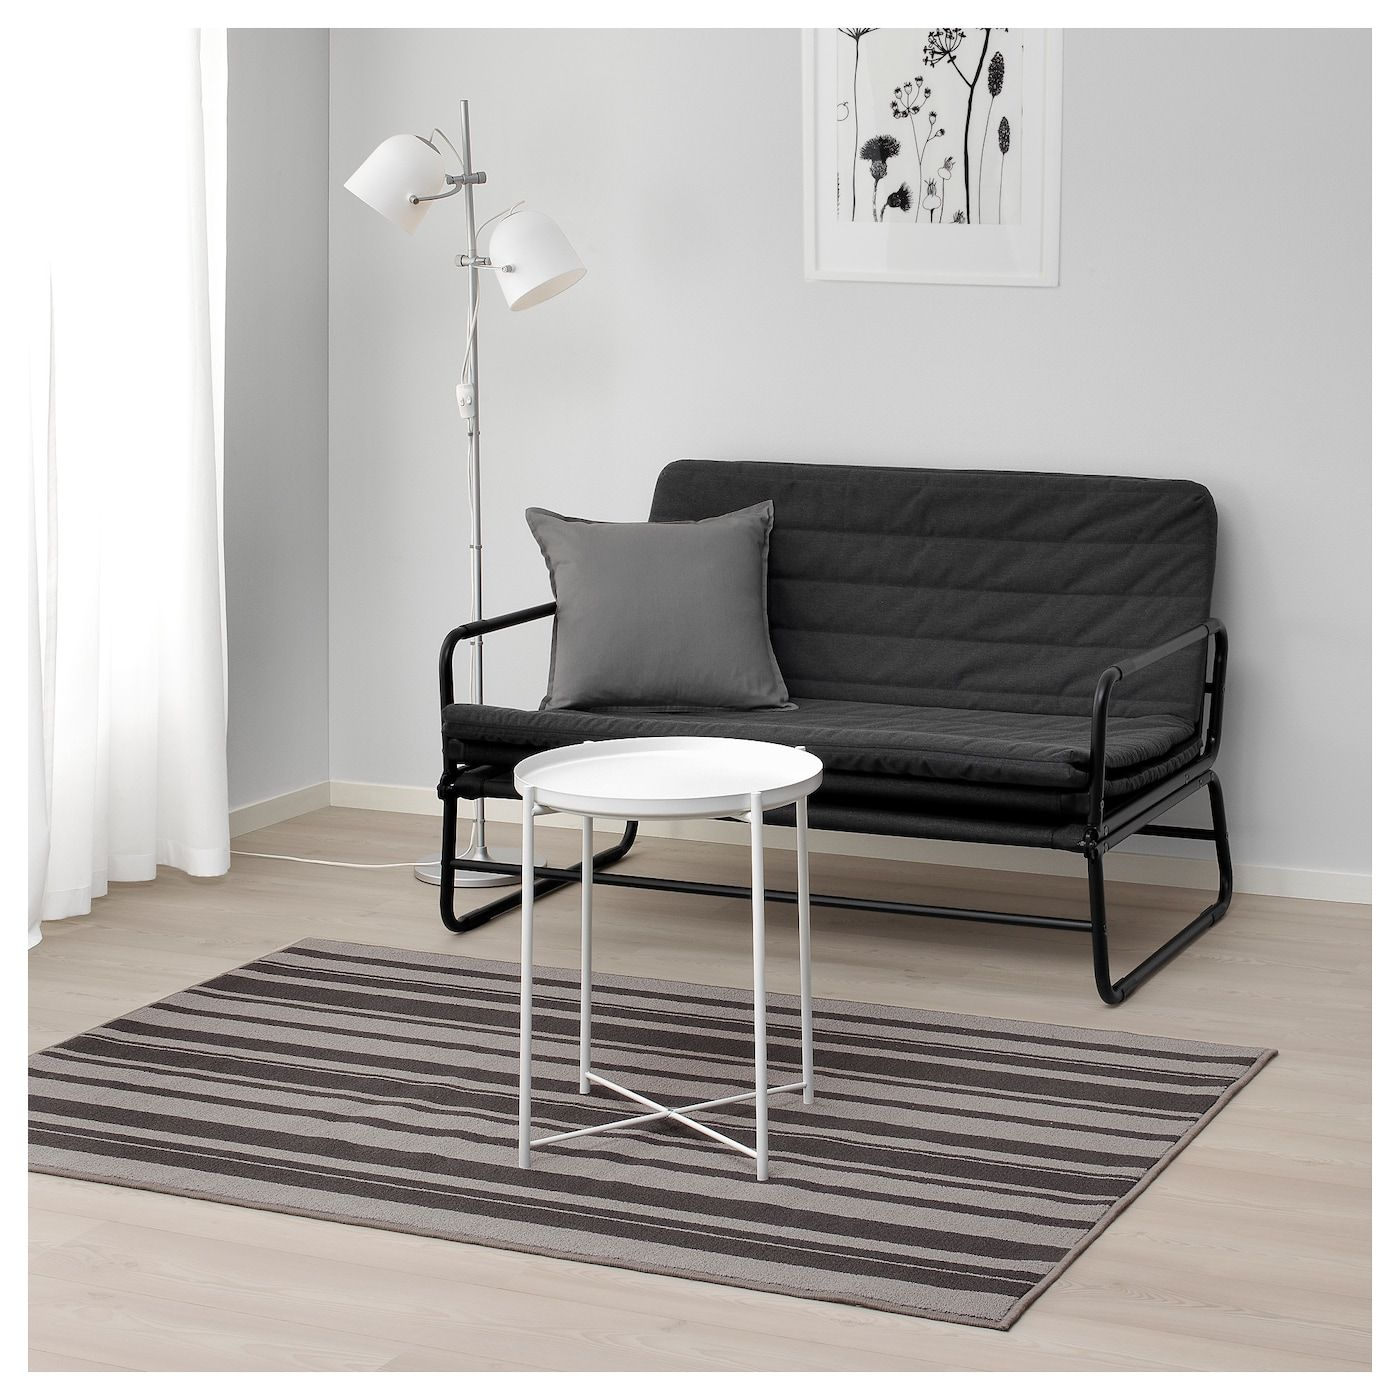 Ibsted Tapis Poils Ras Gris 120x180 Cm Ikea Living Room